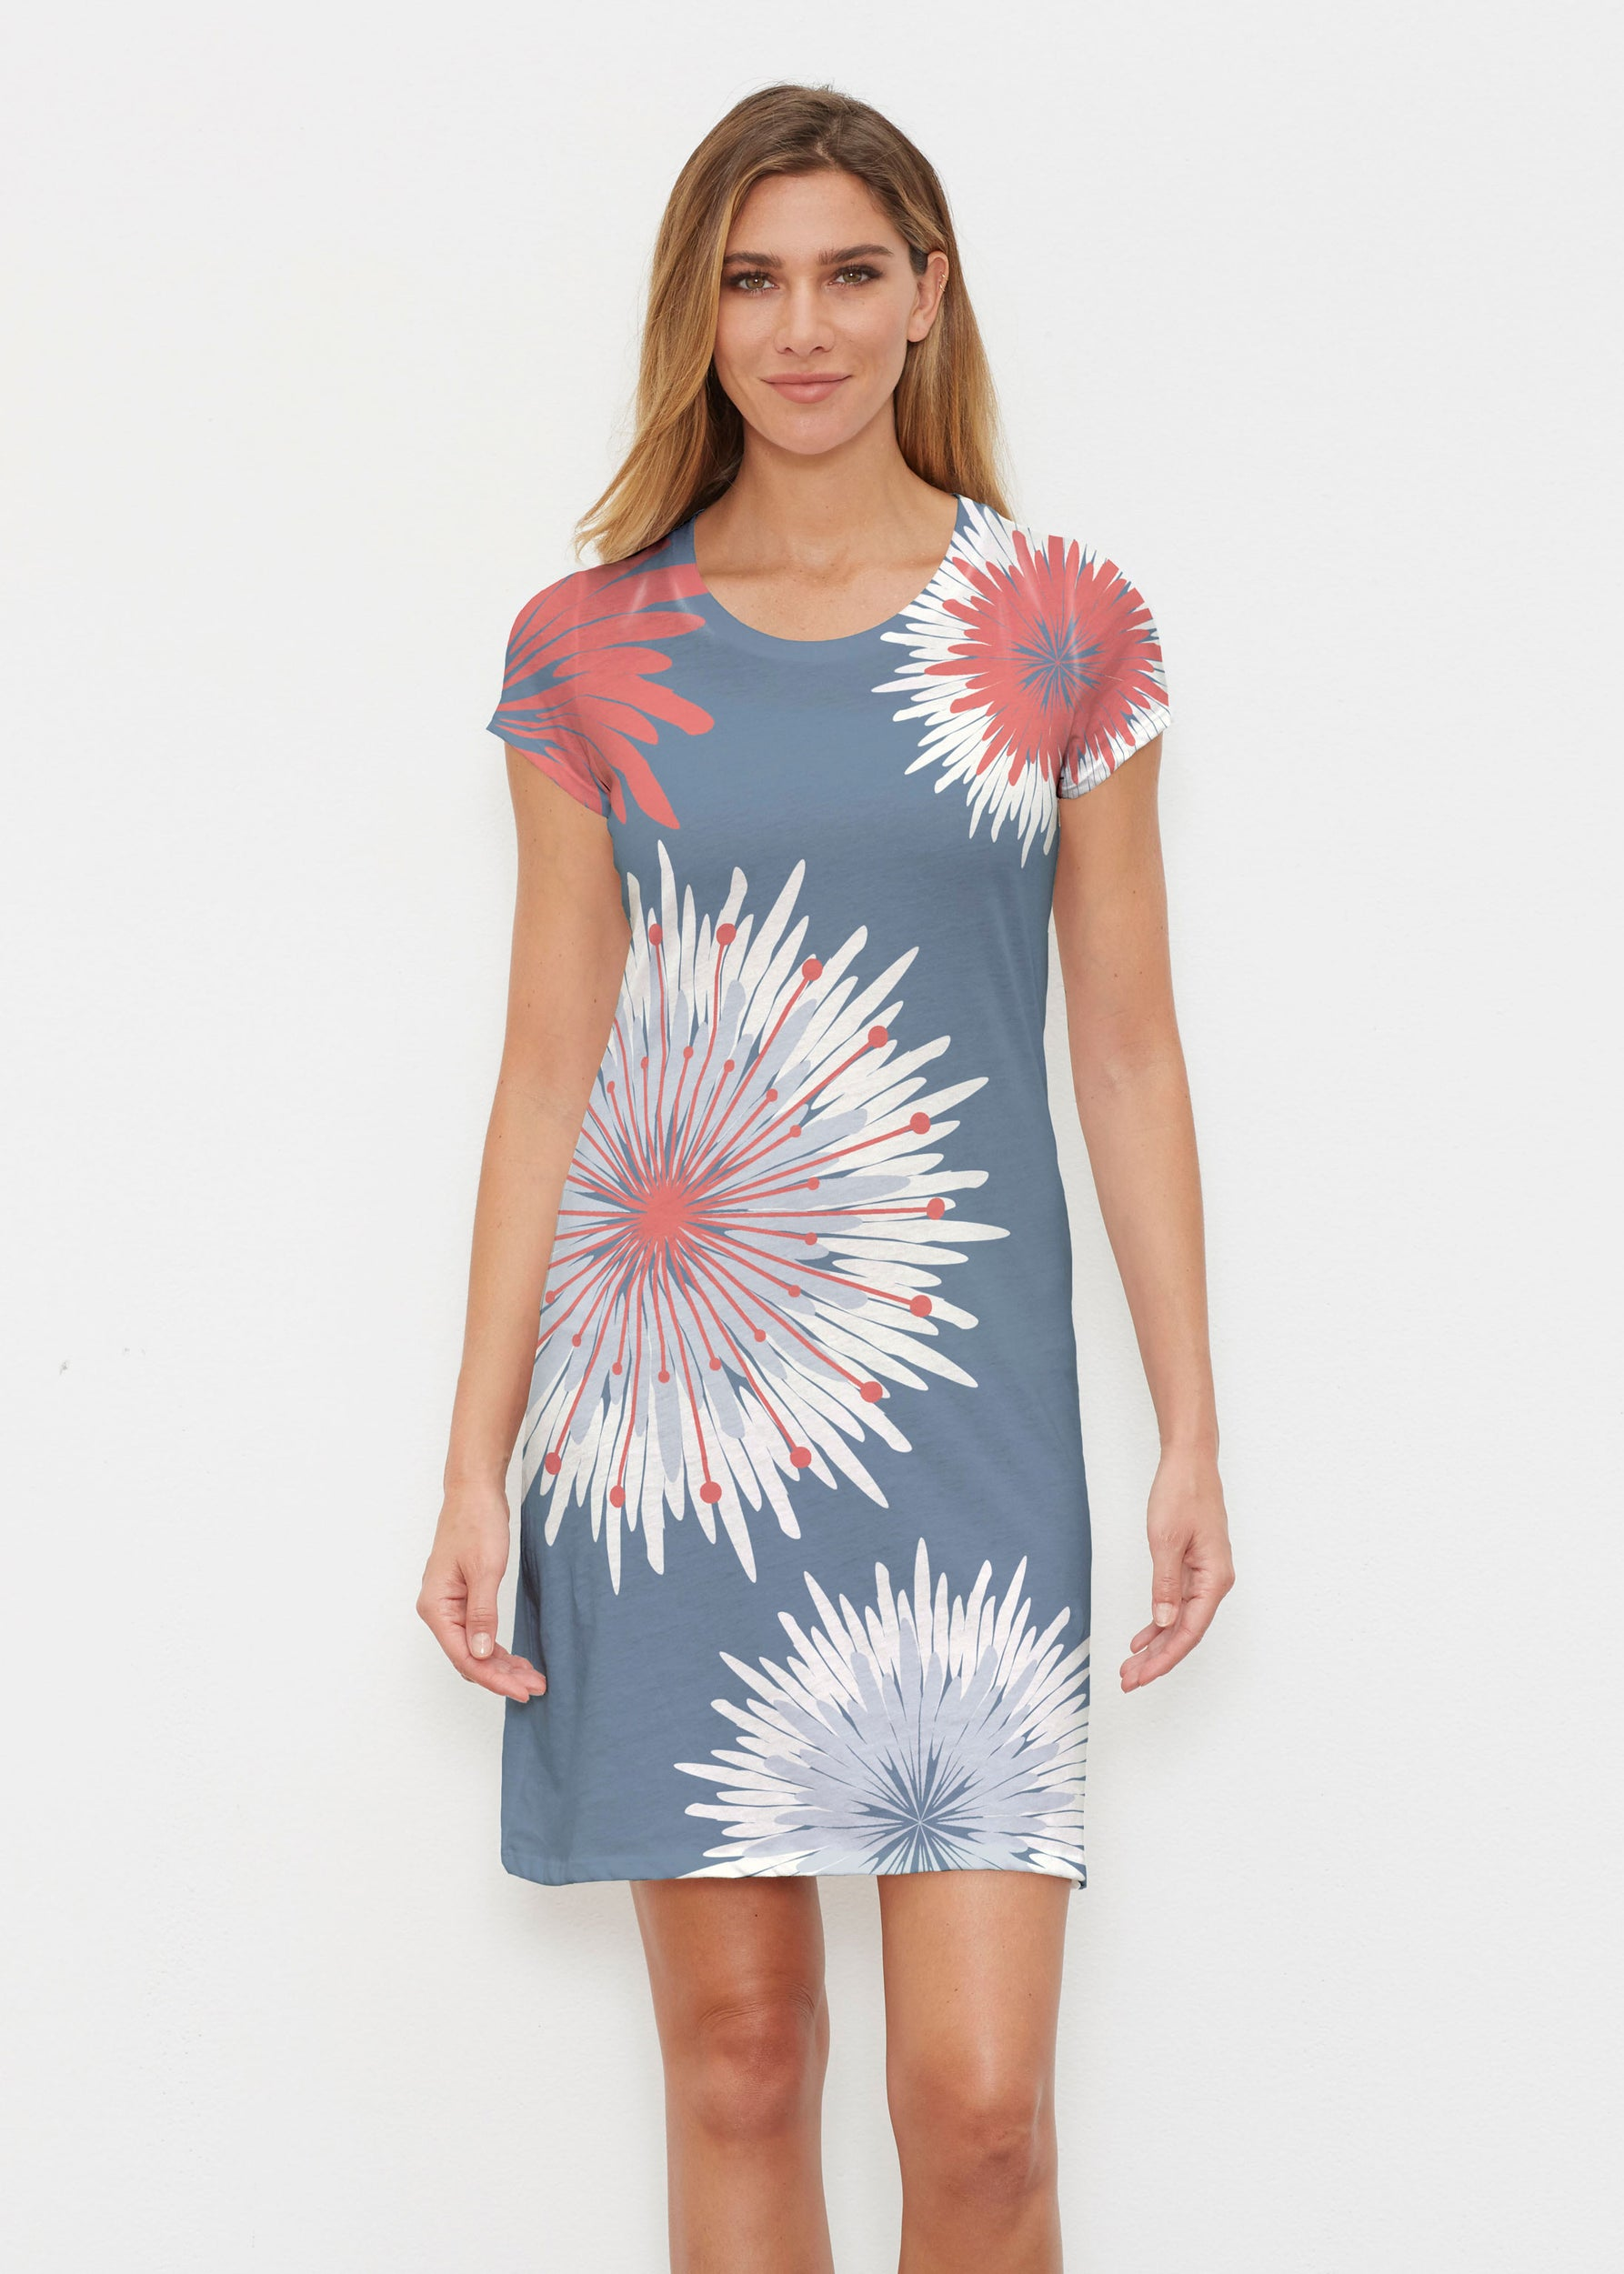 57edac56f Flower Burst RWB (2027) ~ Classic Crew Dress – Whimsy Rose